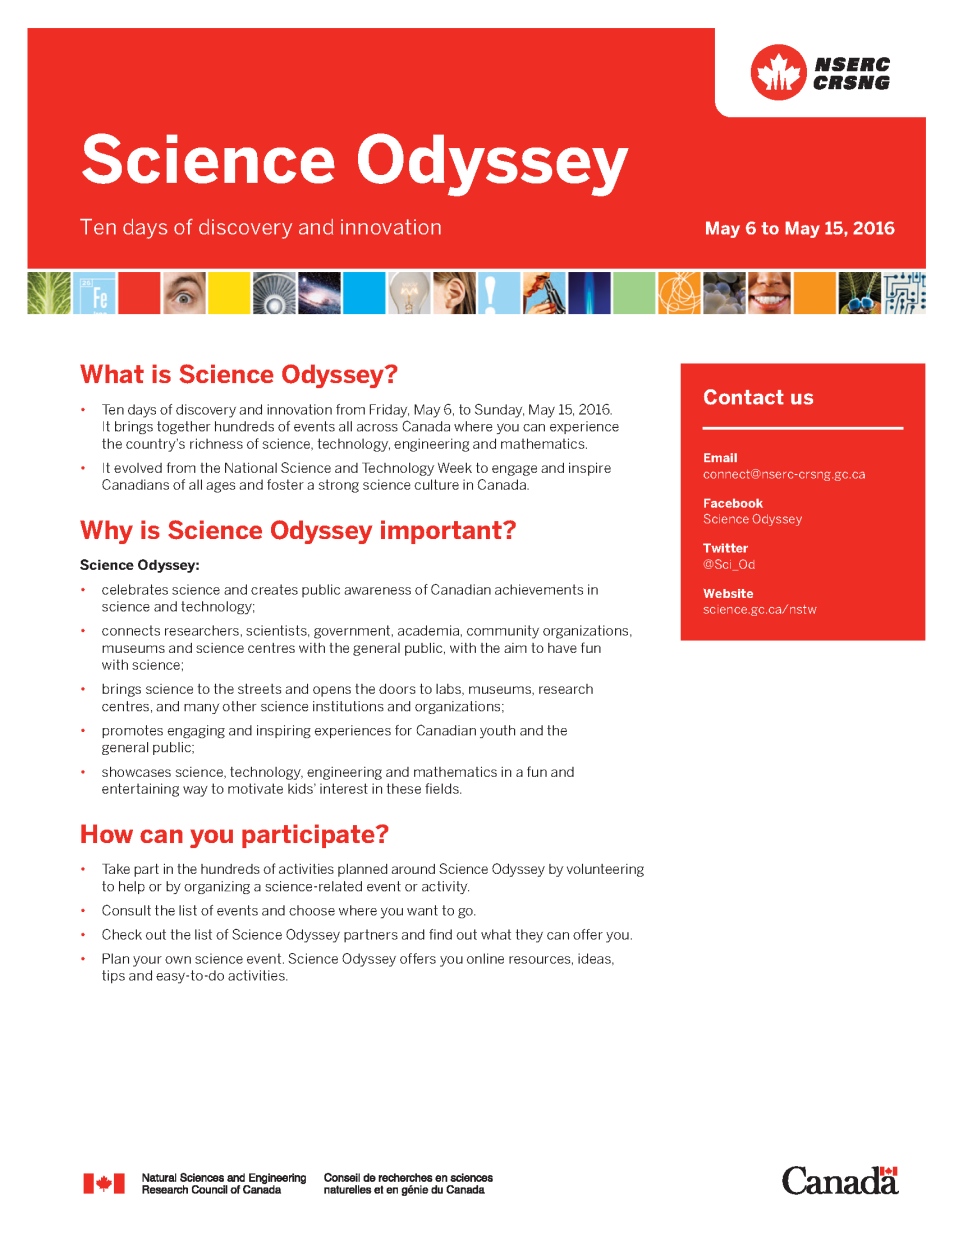 Science Odyssey - Backgrounder